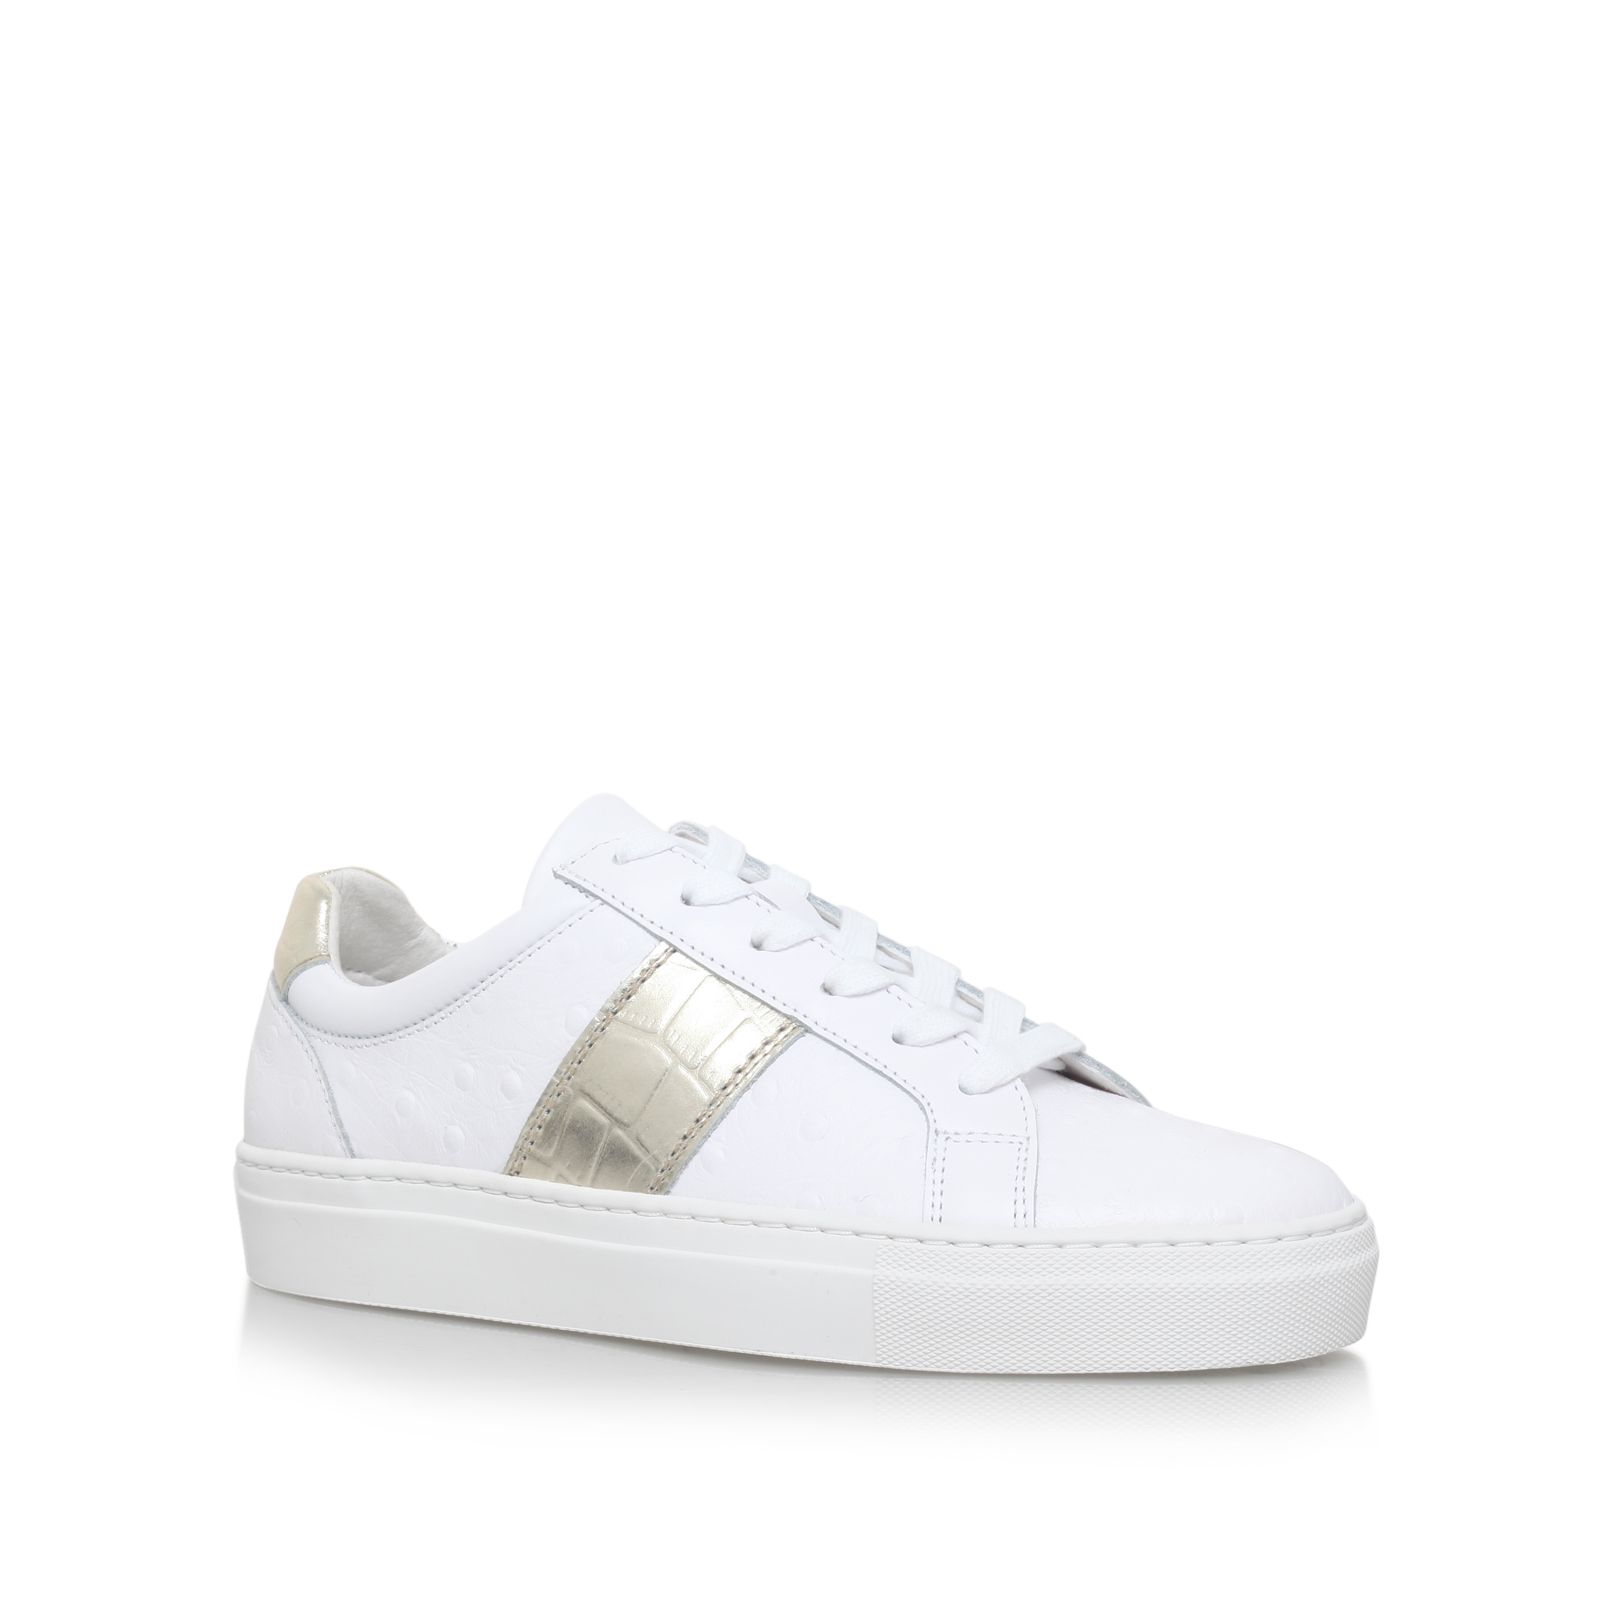 Kurt Geiger Lambeth flat lace up sneakers, White